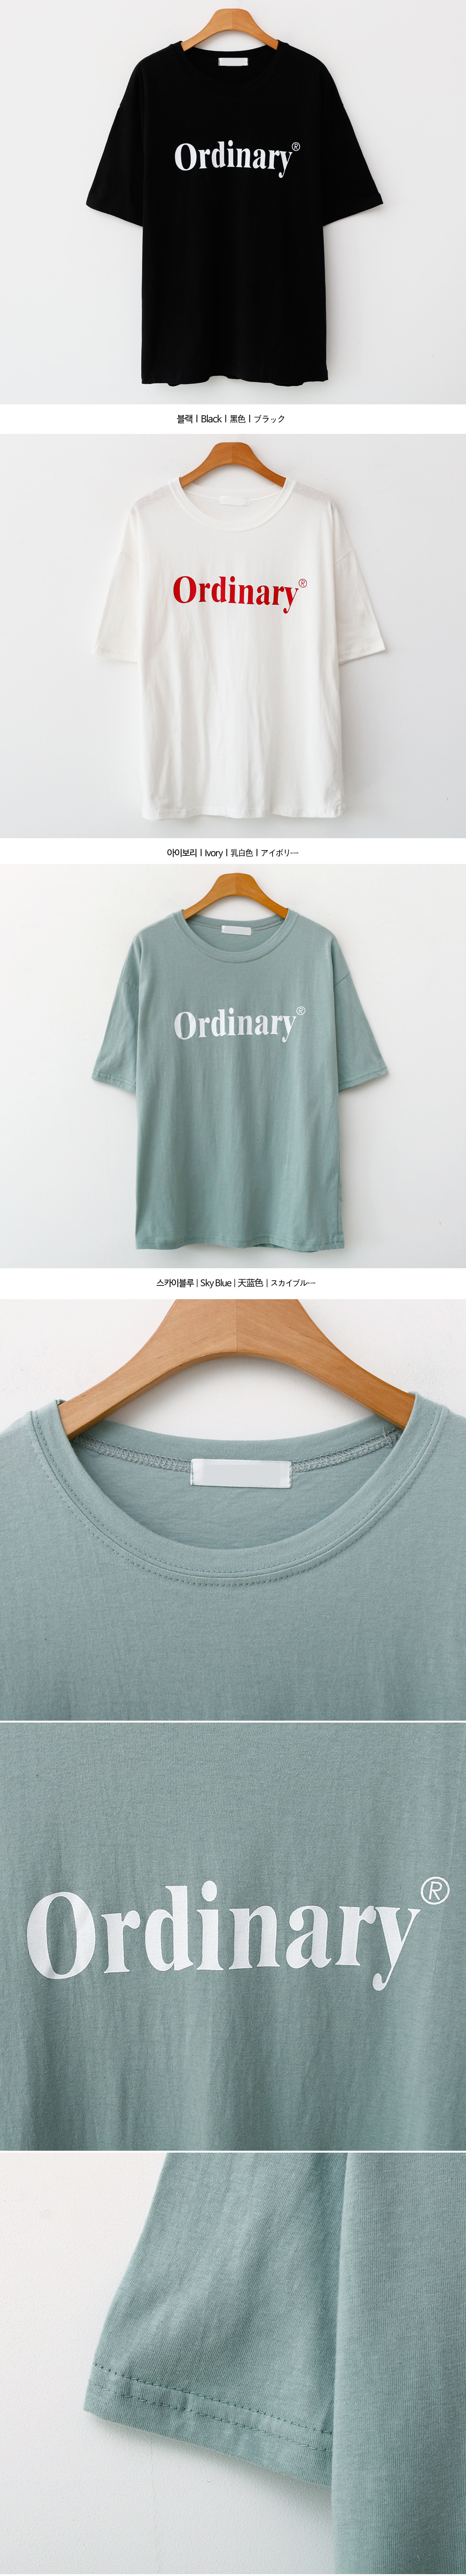 An authentic t-shirt